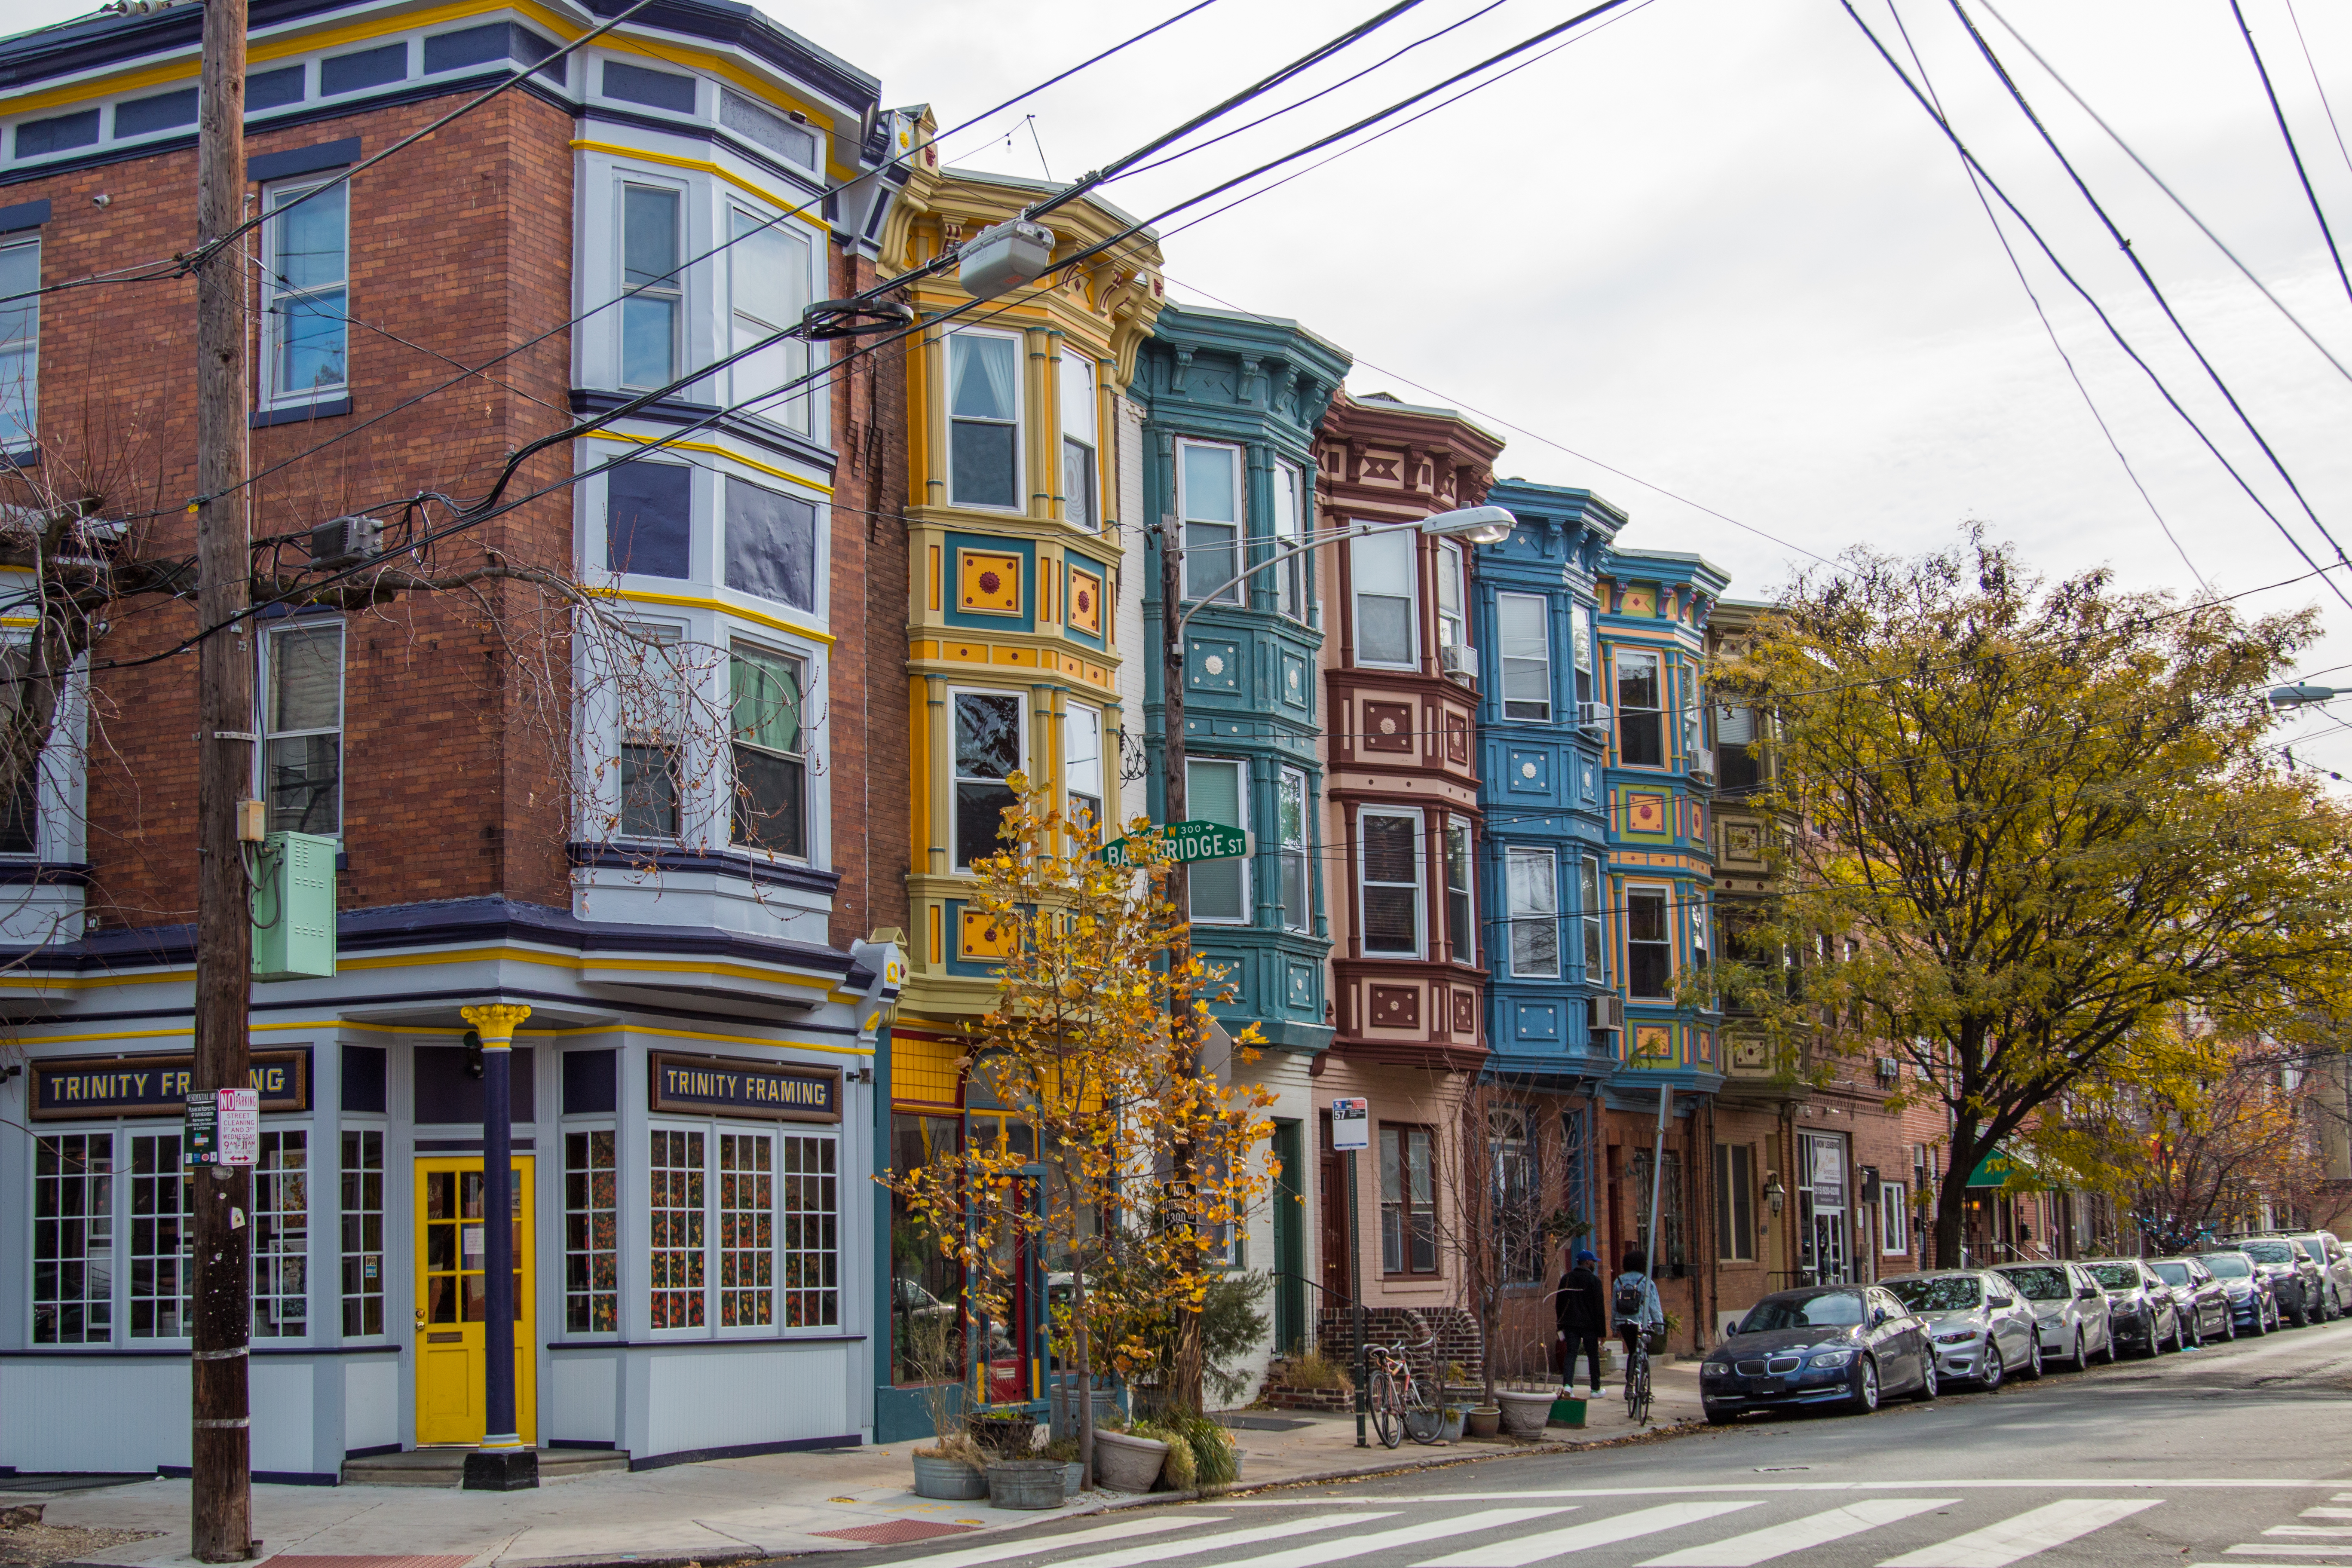 12 Non Touristy Places In Philly To Take Out Of Town Visitors